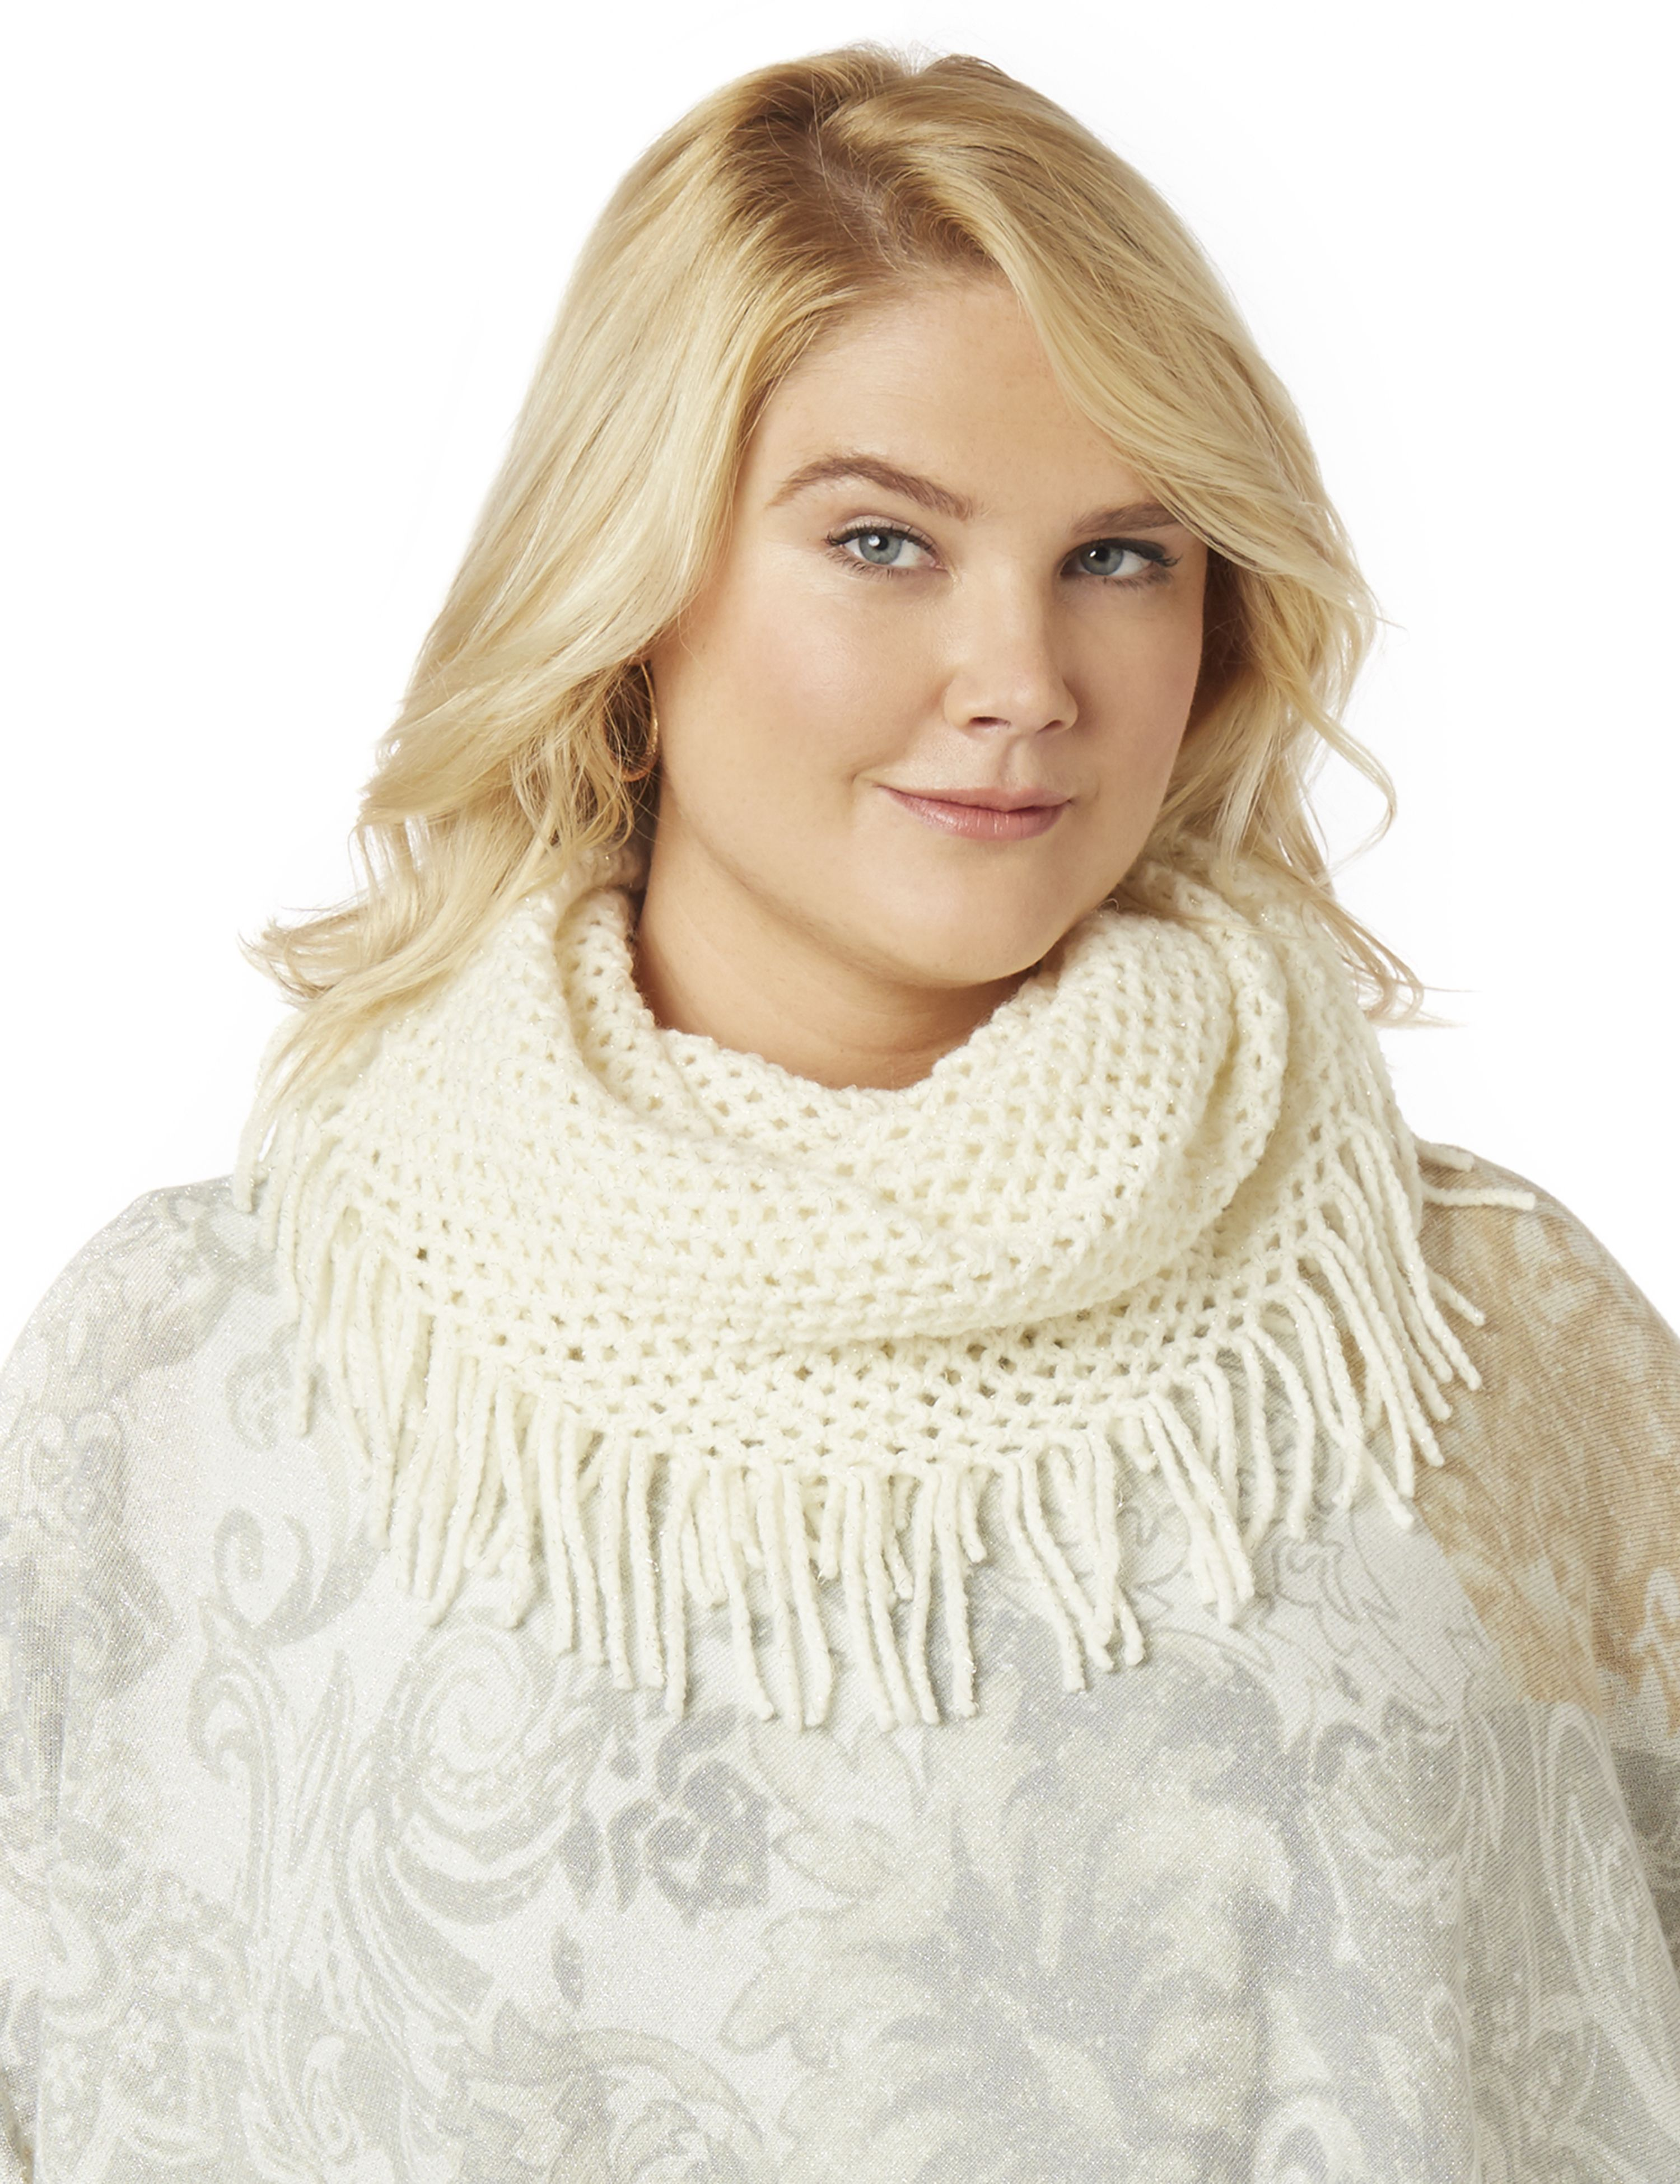 Metallic Touch Infinity Scarf AD Lurex Infinity w/ Fringe MP-300086476